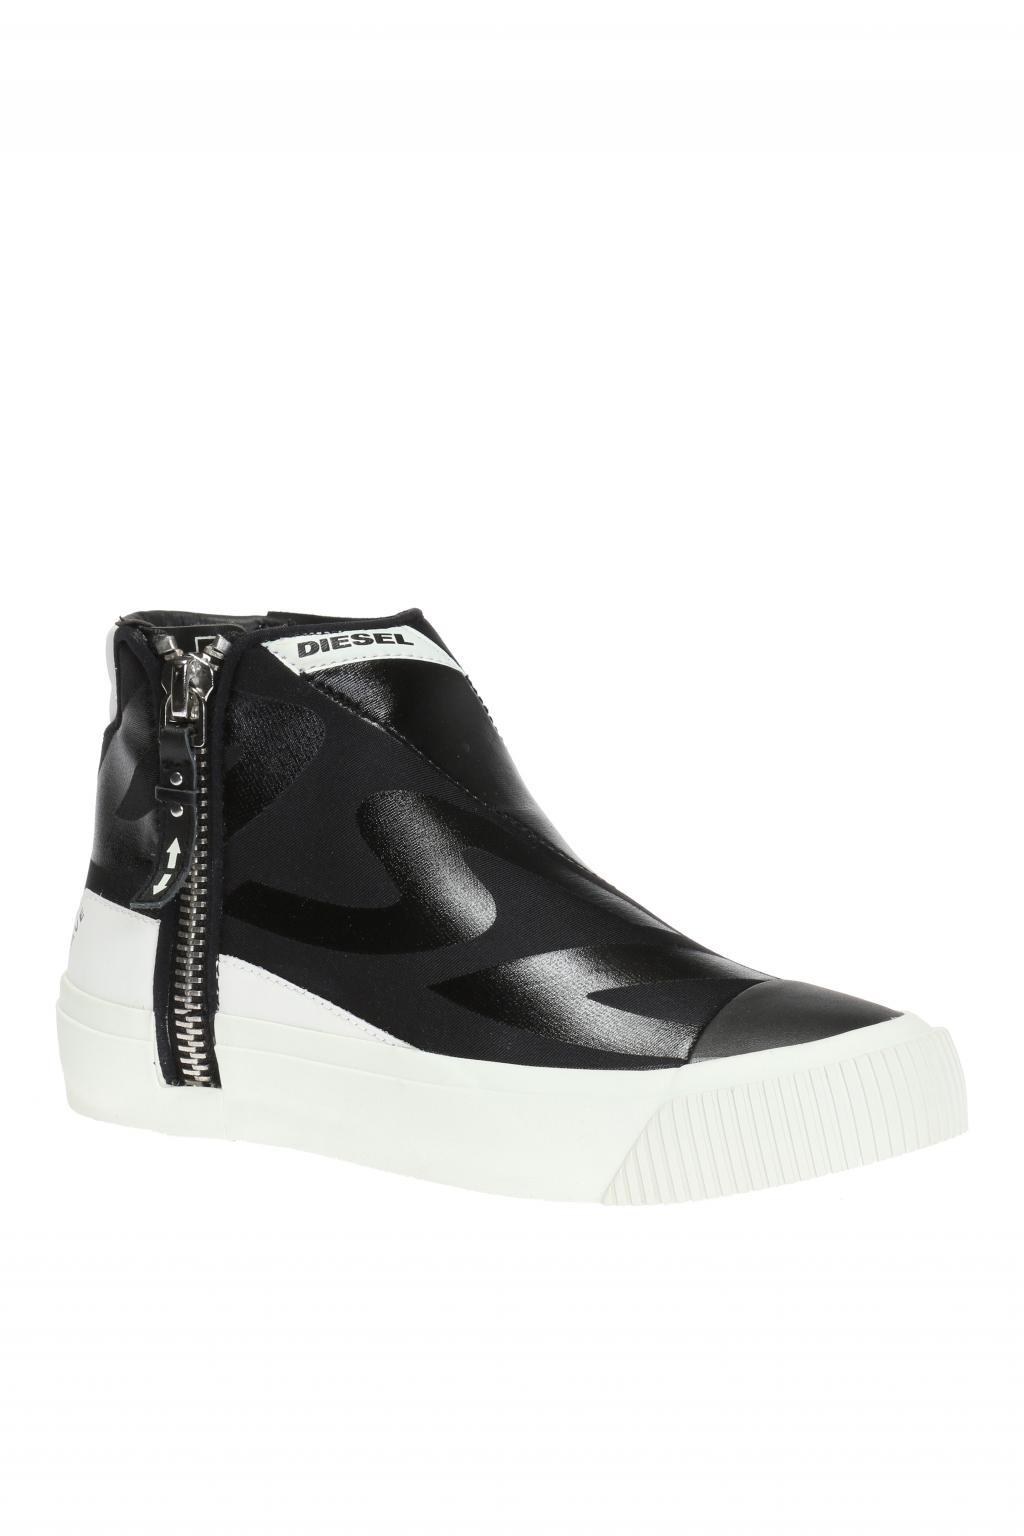 Diesel Leather S Quest High Top Sneakers In Black For